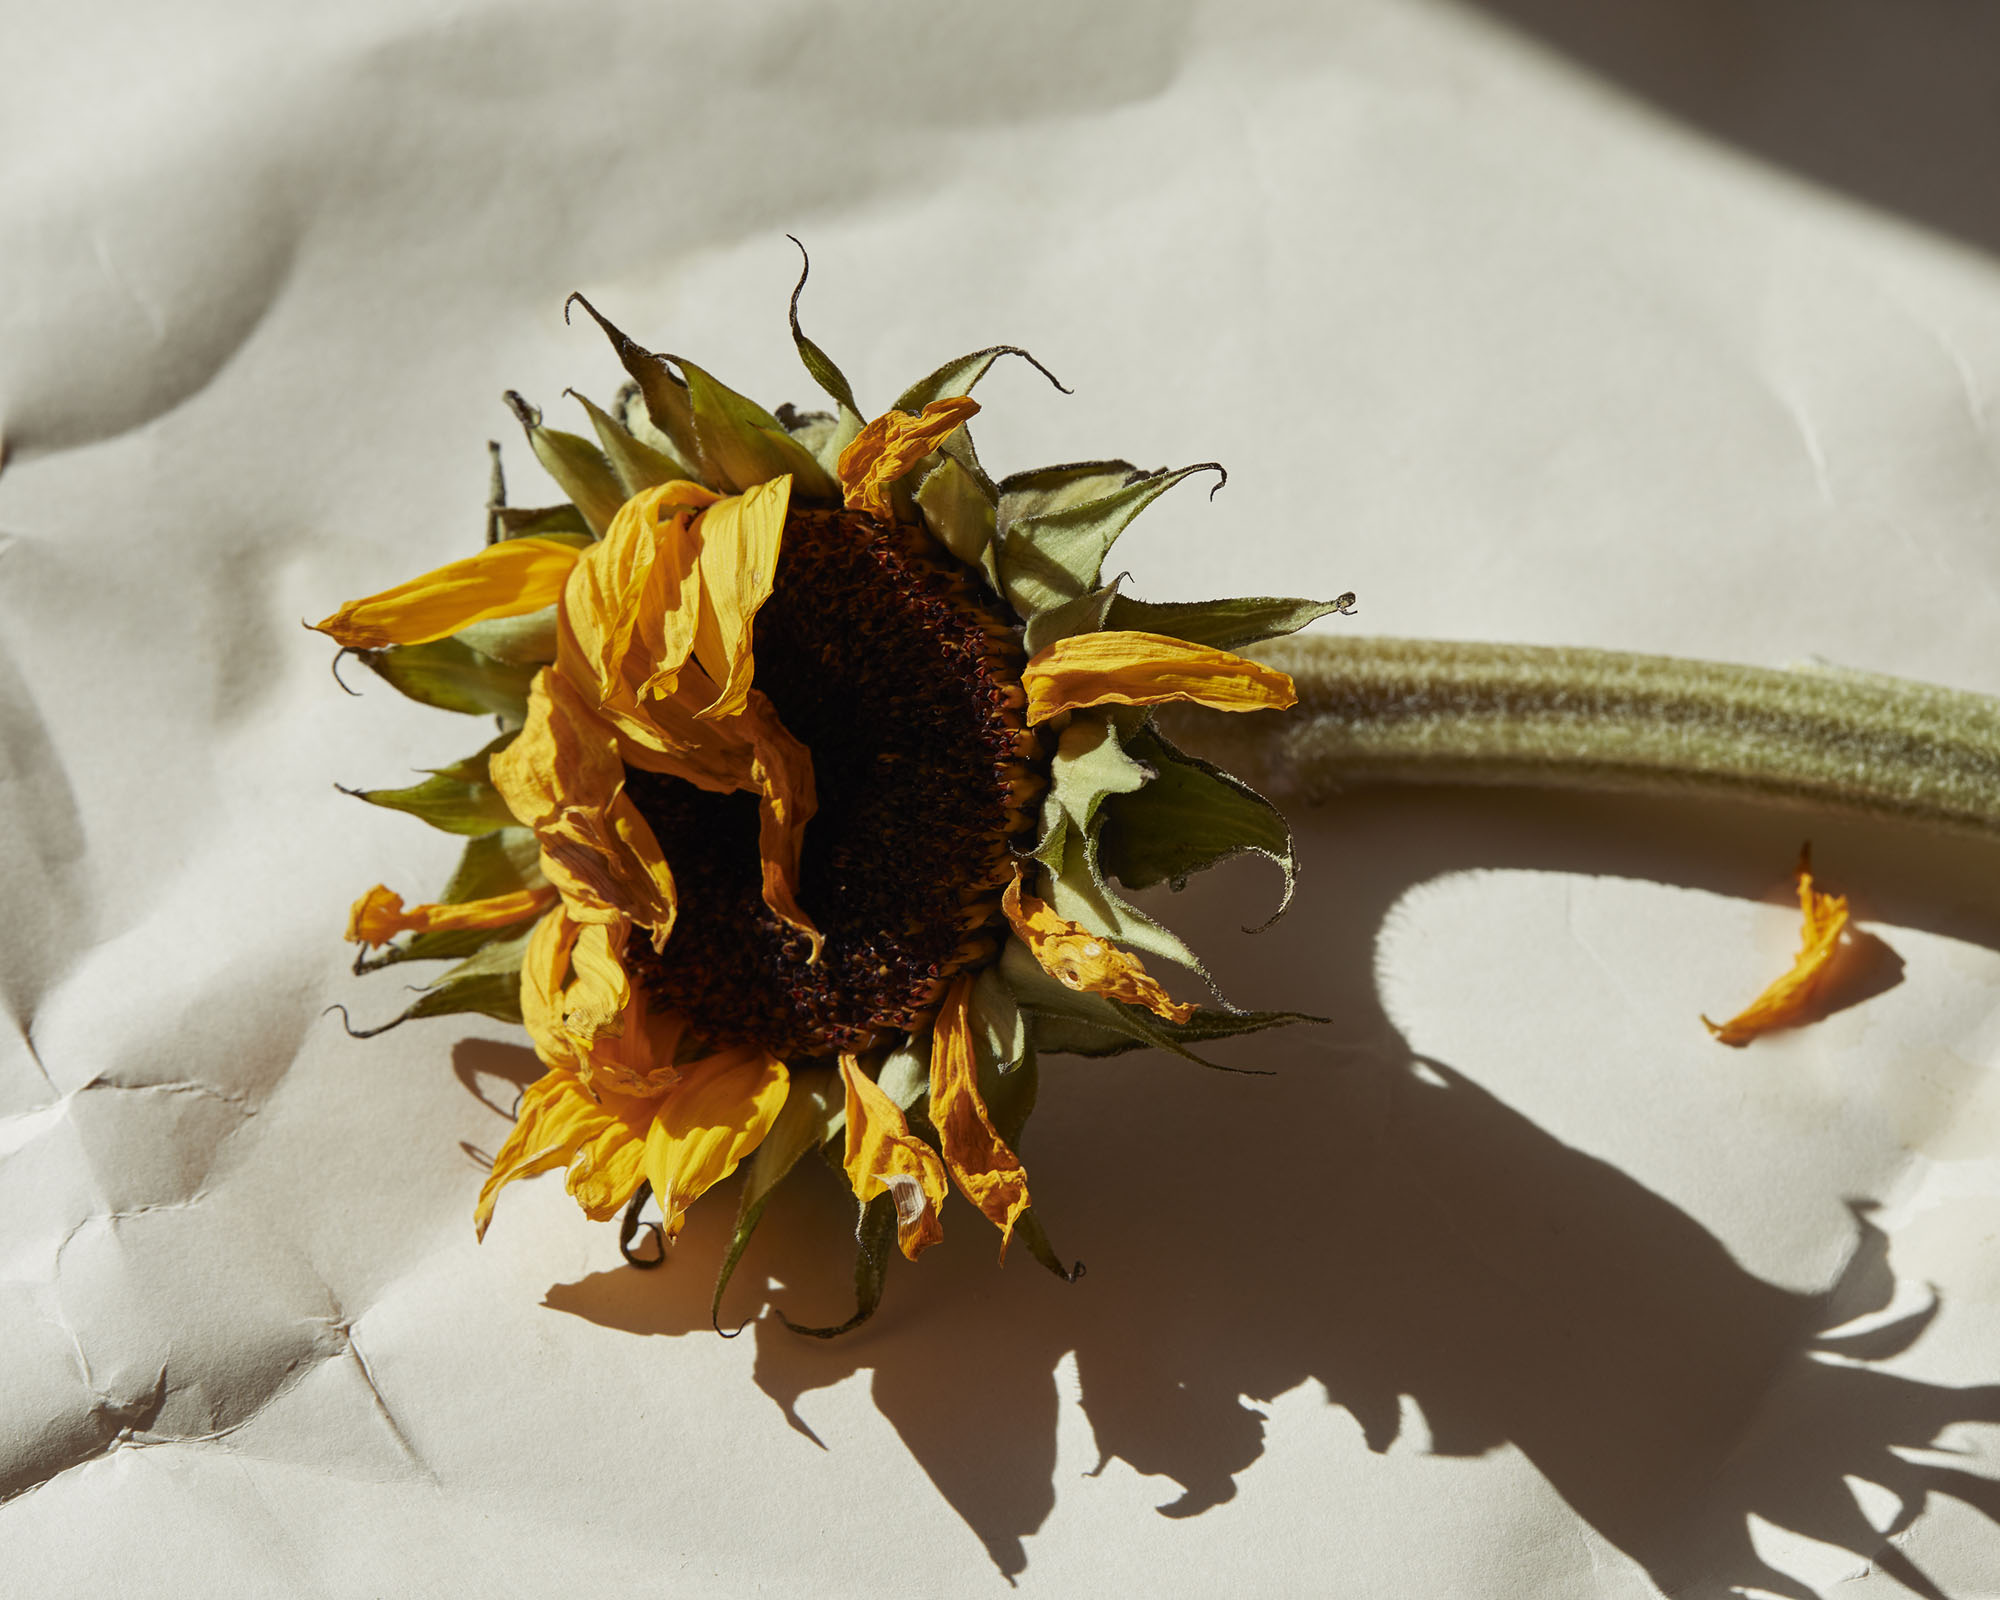 A still life image of a sunflower with hard window light